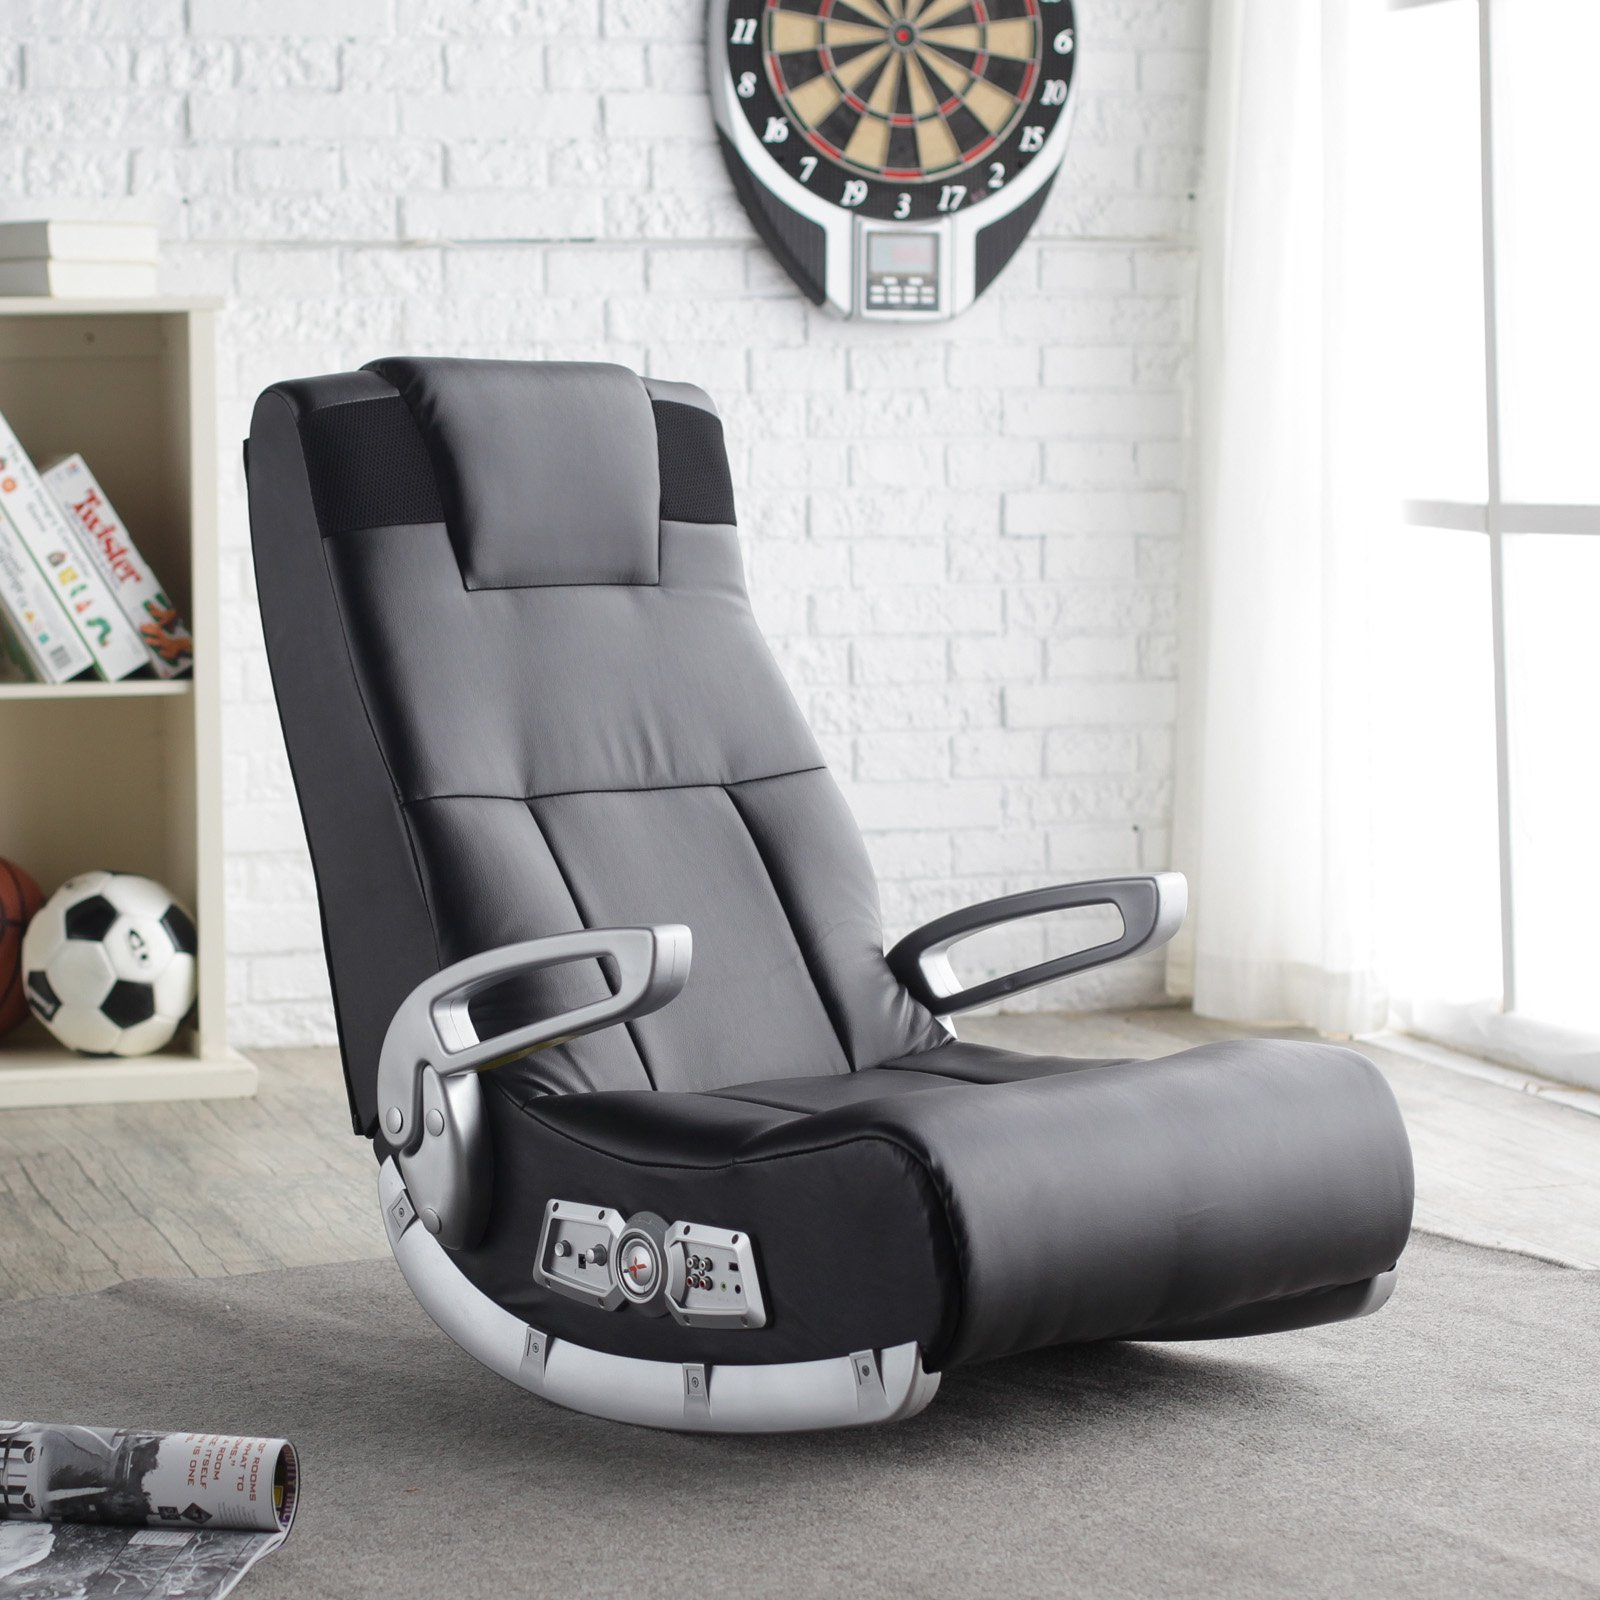 & The Definitive X Rocker Gaming Chair Buyeru0027s Guide | Macrospective